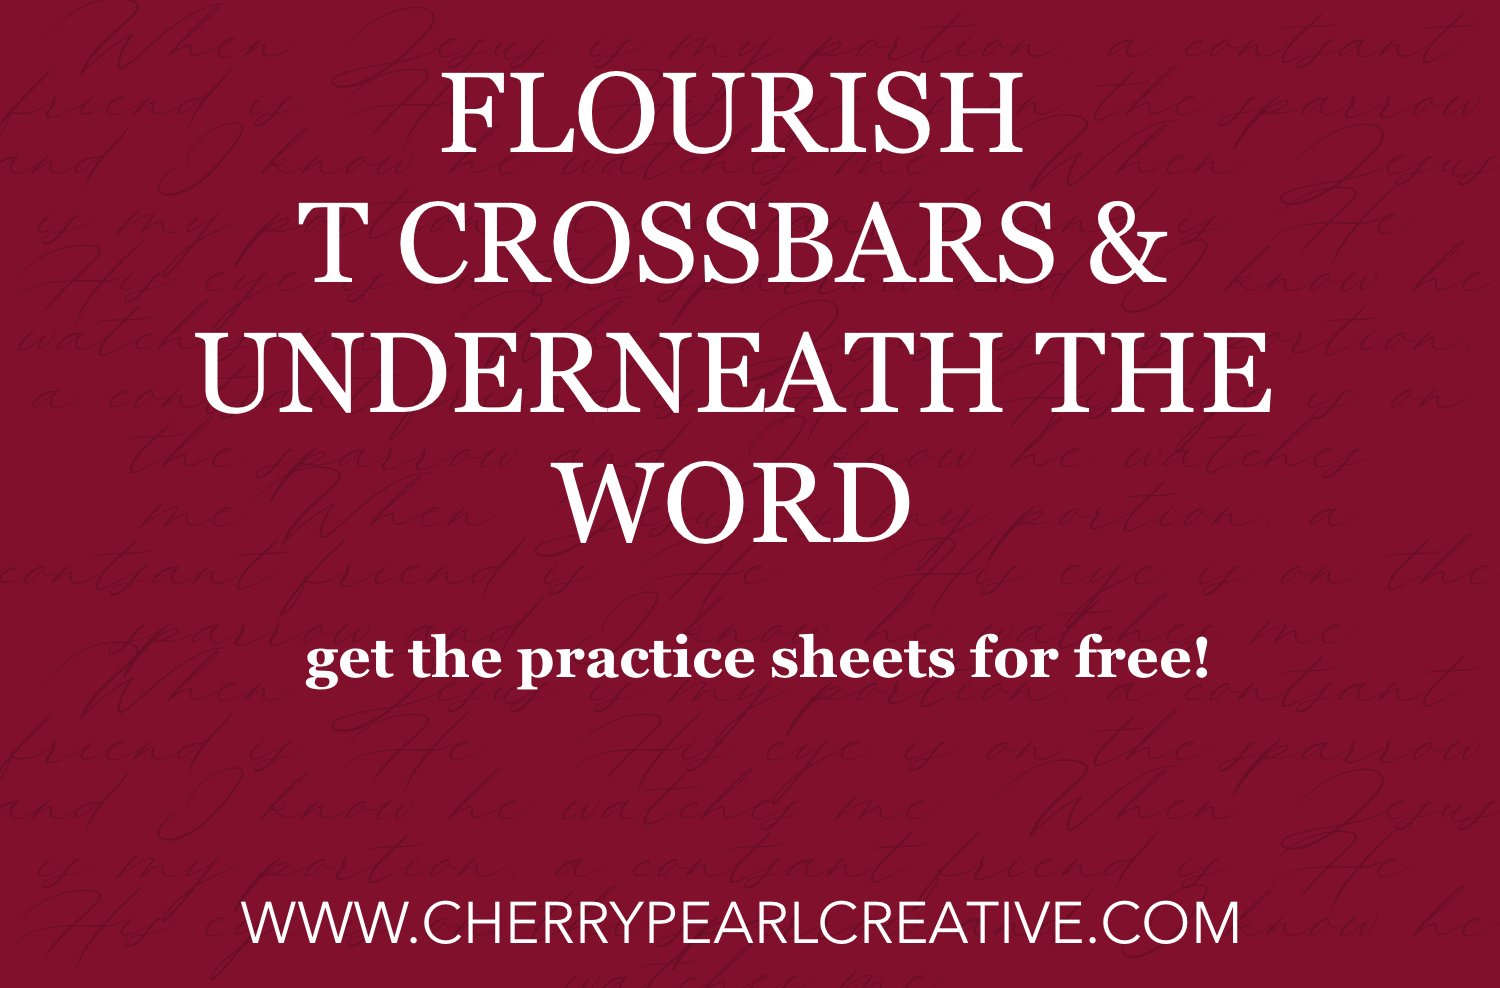 Flourishing Ascenders and Descenders Worksheets - Cherry Pearl Creative